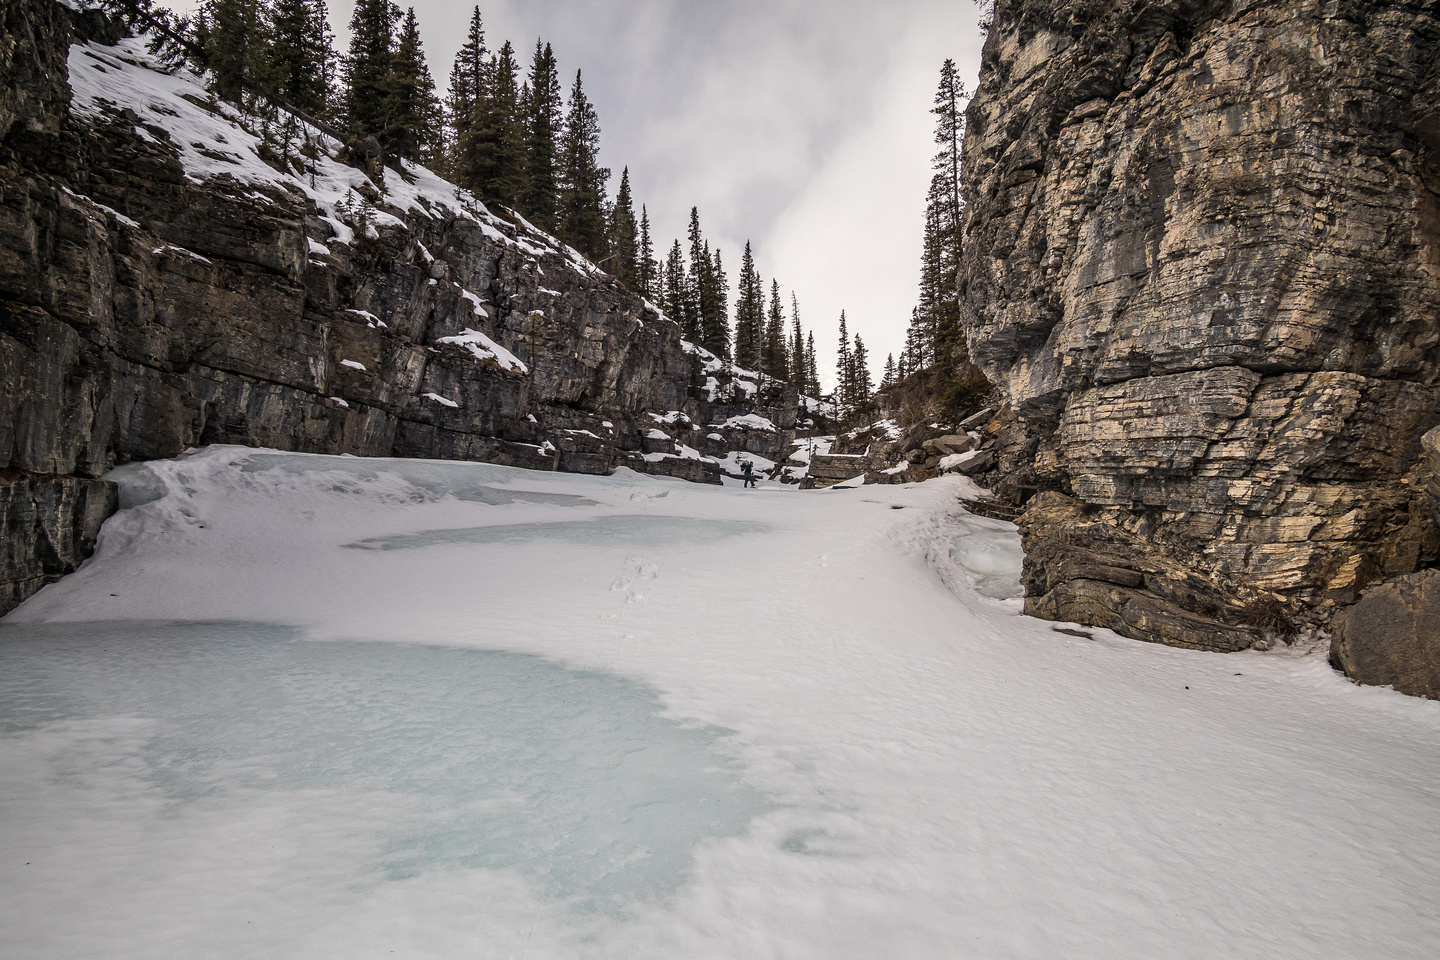 Snowshoes were essential for weight distribution and grip on the blue ice in the creek.